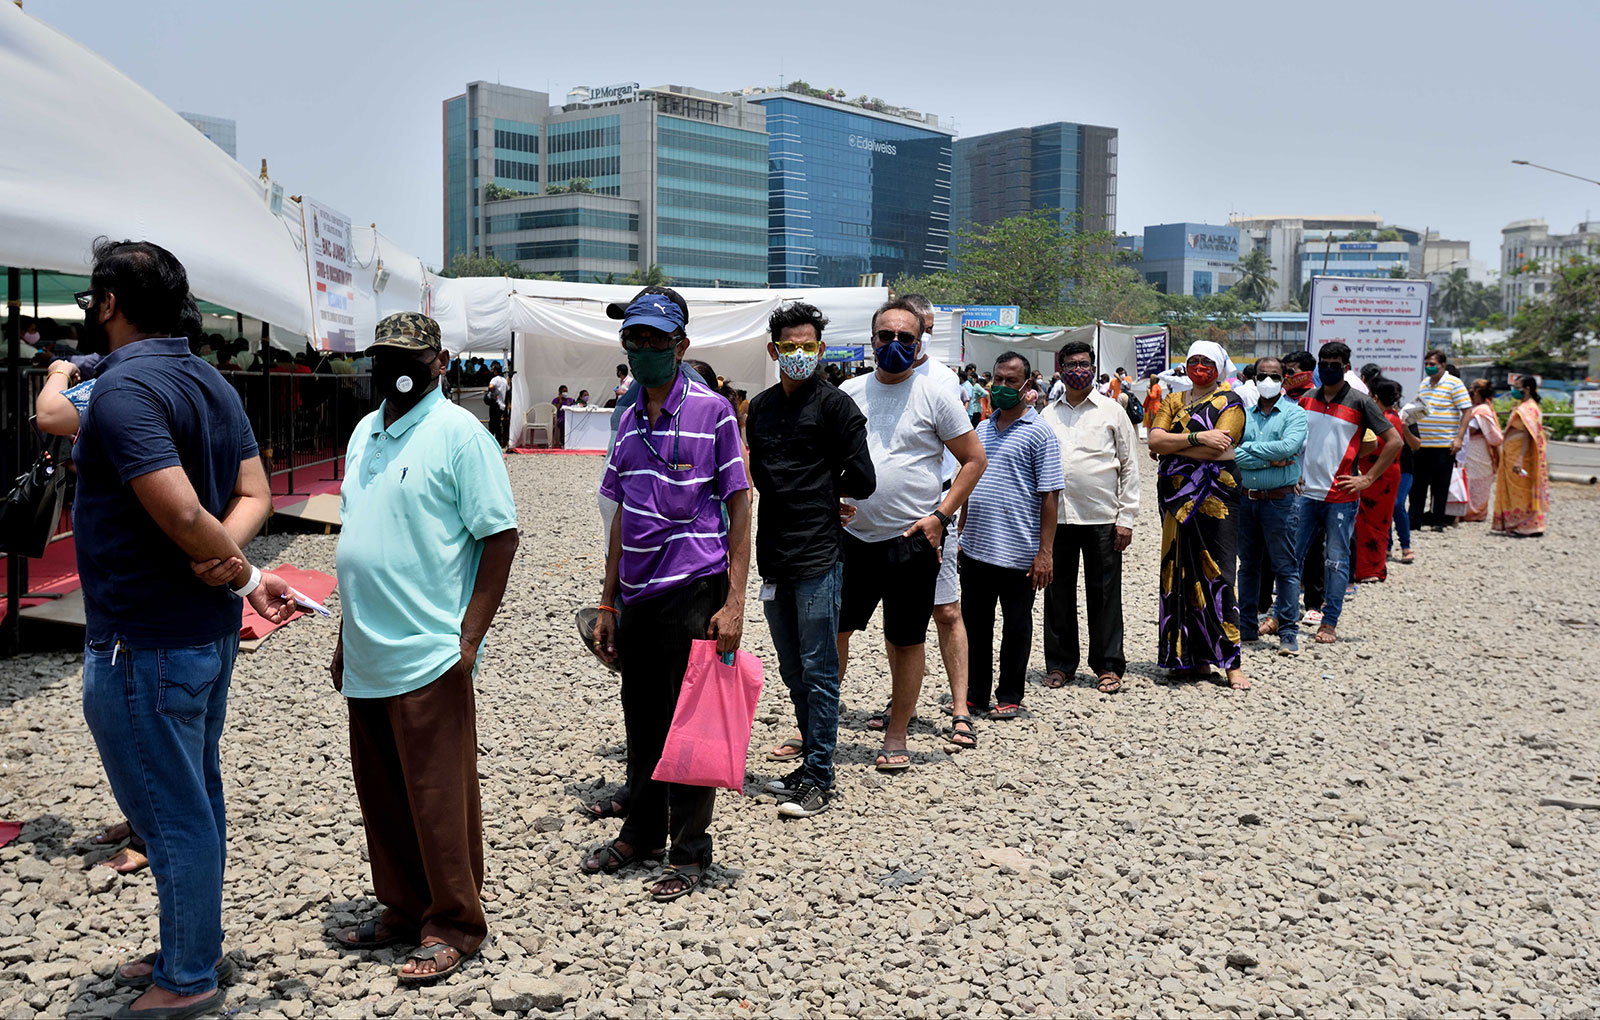 People wait in line to get vaccinated in Mumbai on April 27.